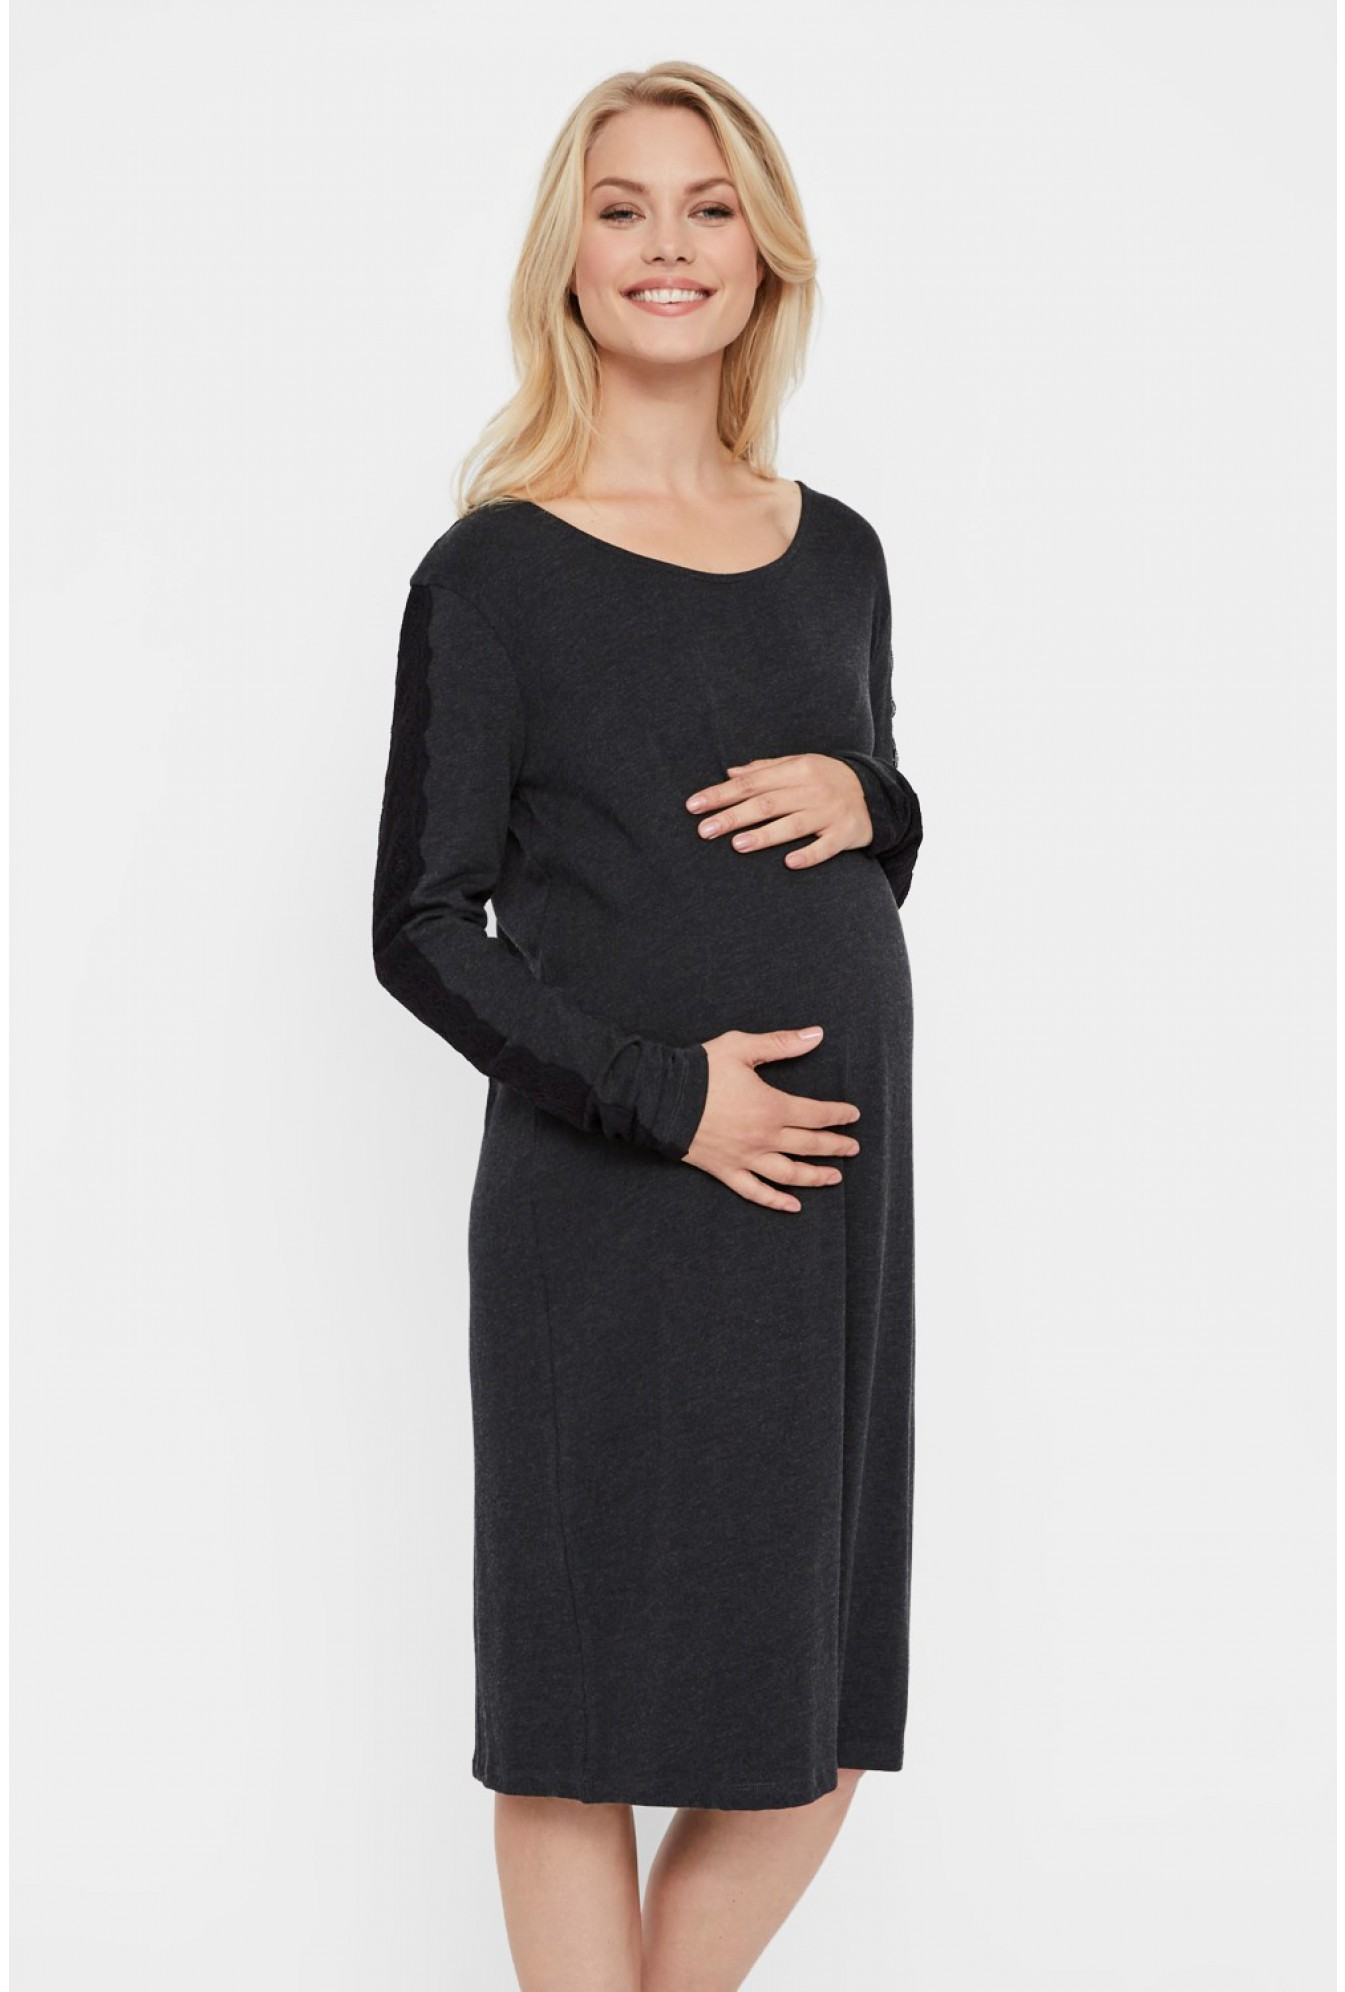 b93086faf974 Mamalicious Ange Maternity Jersey Dress | iCLOTHING